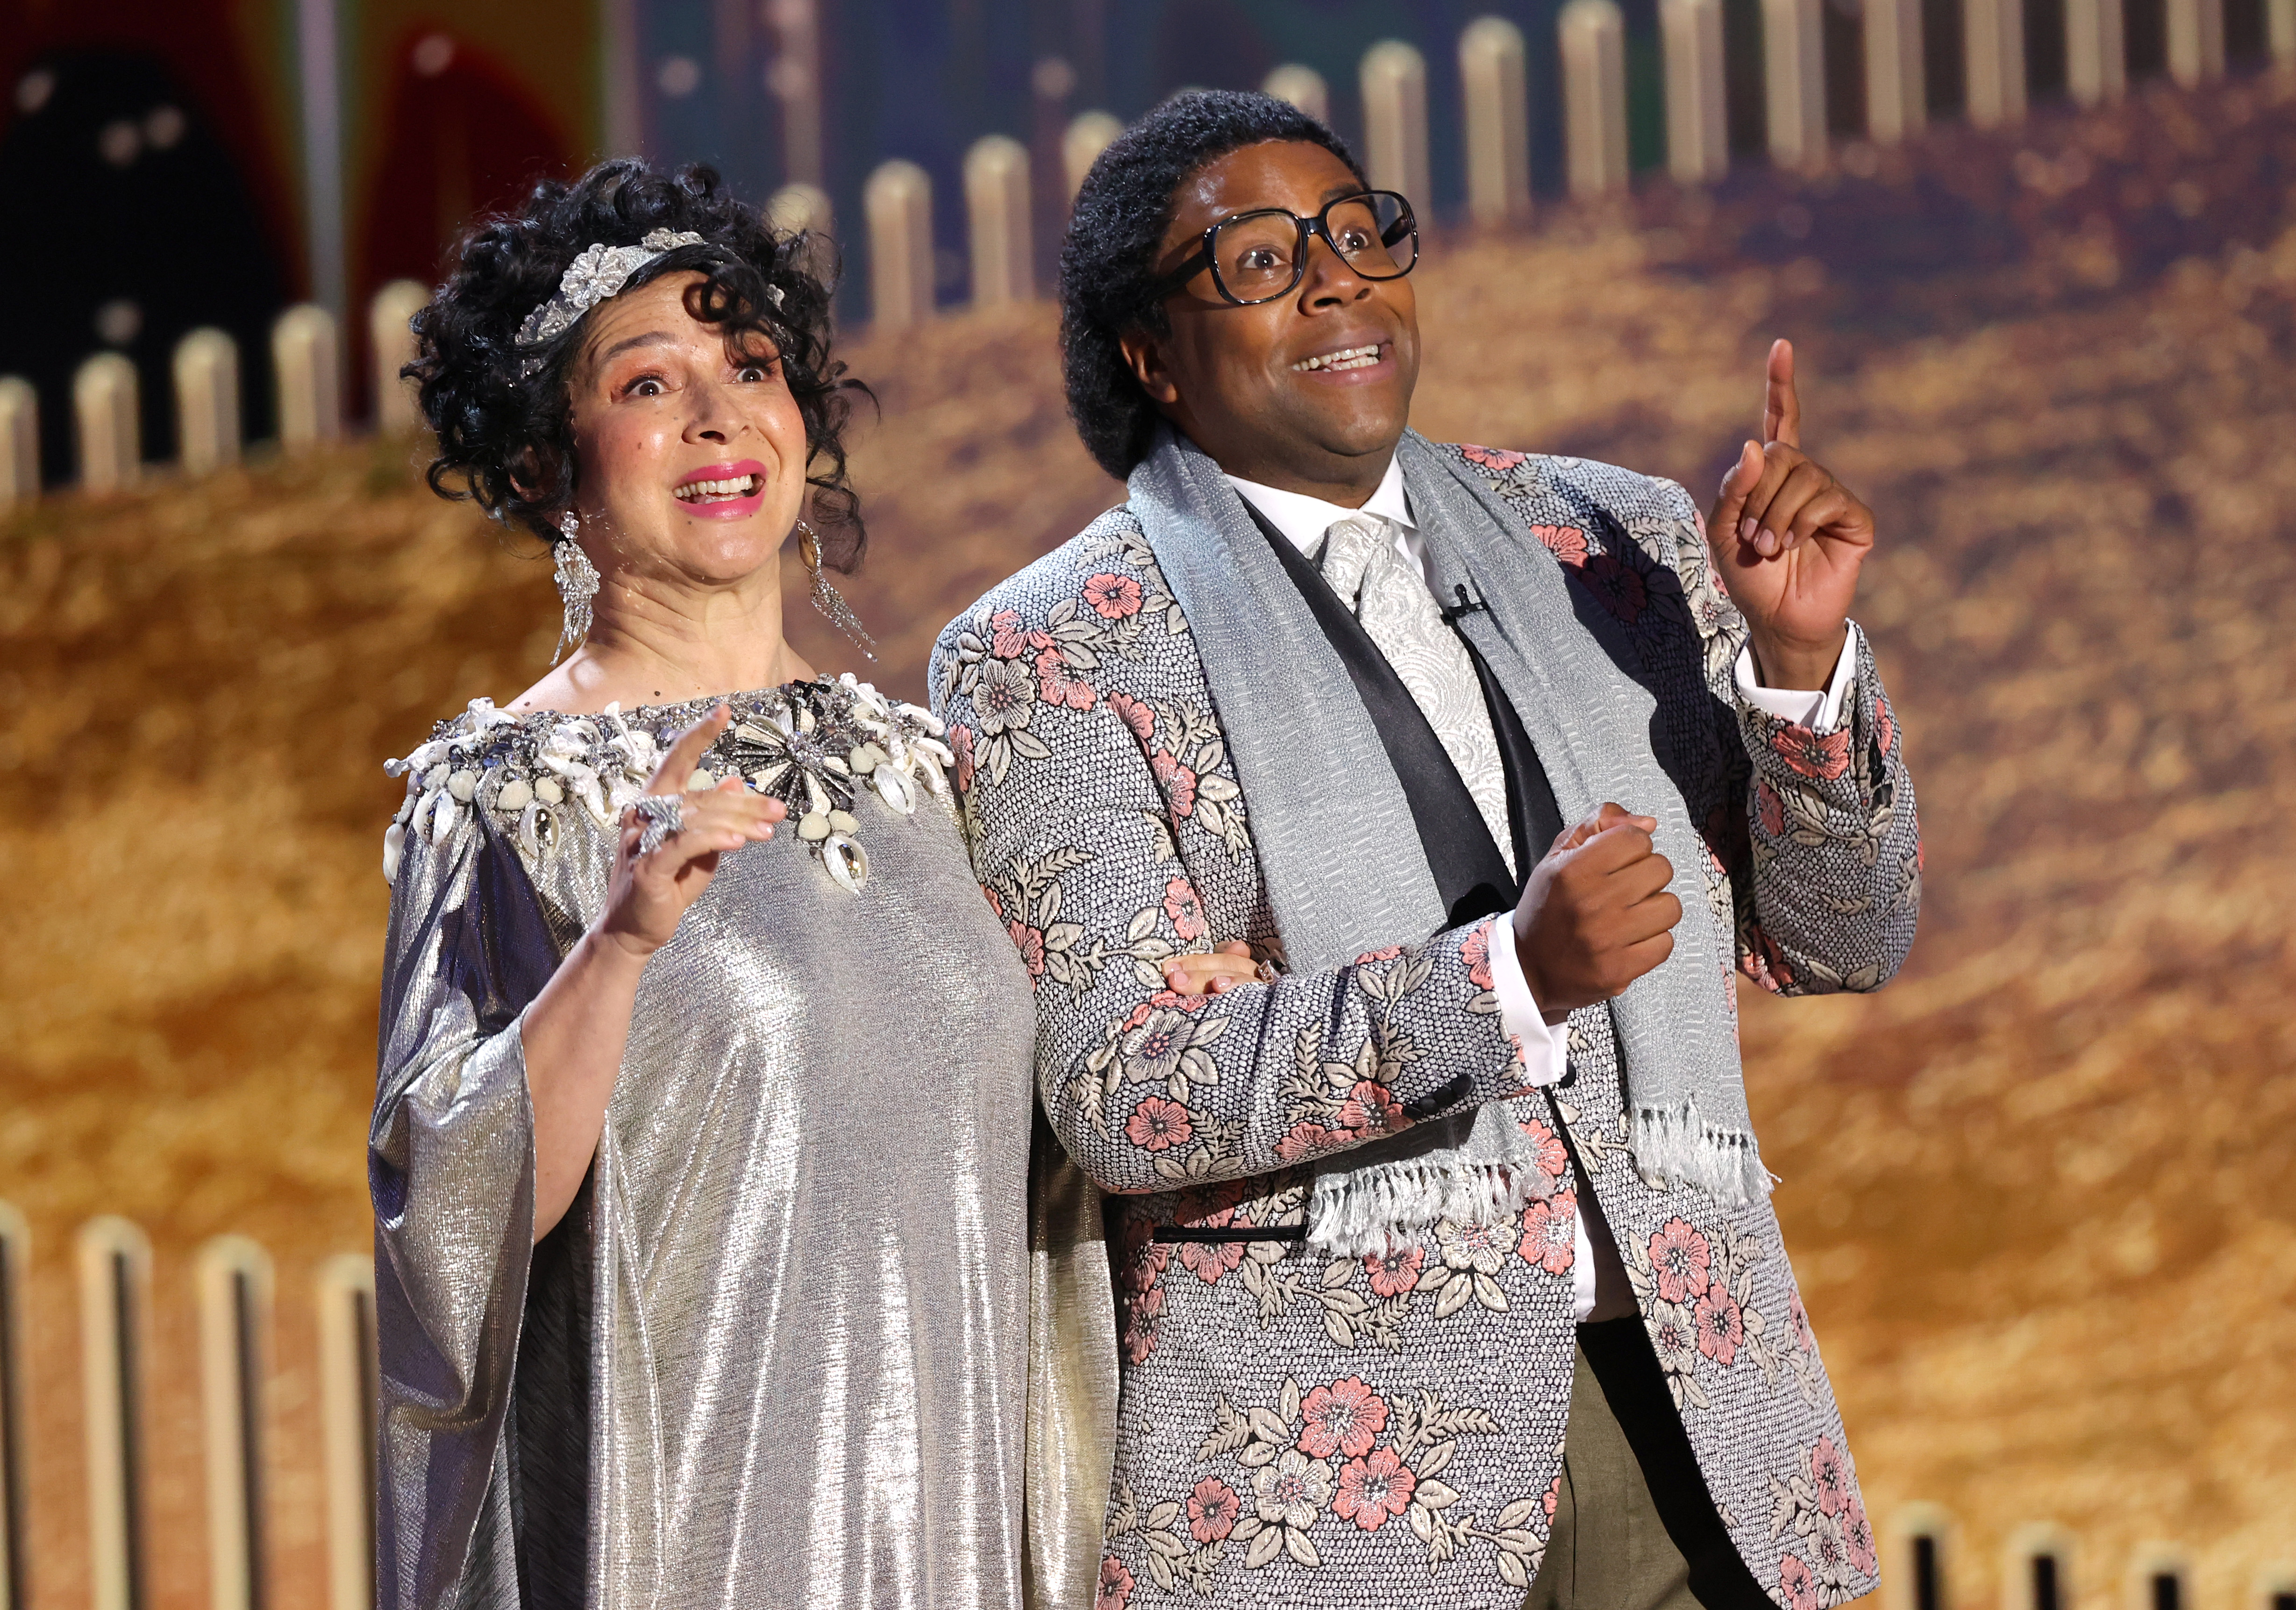 Maya Rudolph and Kenan Thompson perform a skit onstage at the 78th Annual Golden Globe Awards